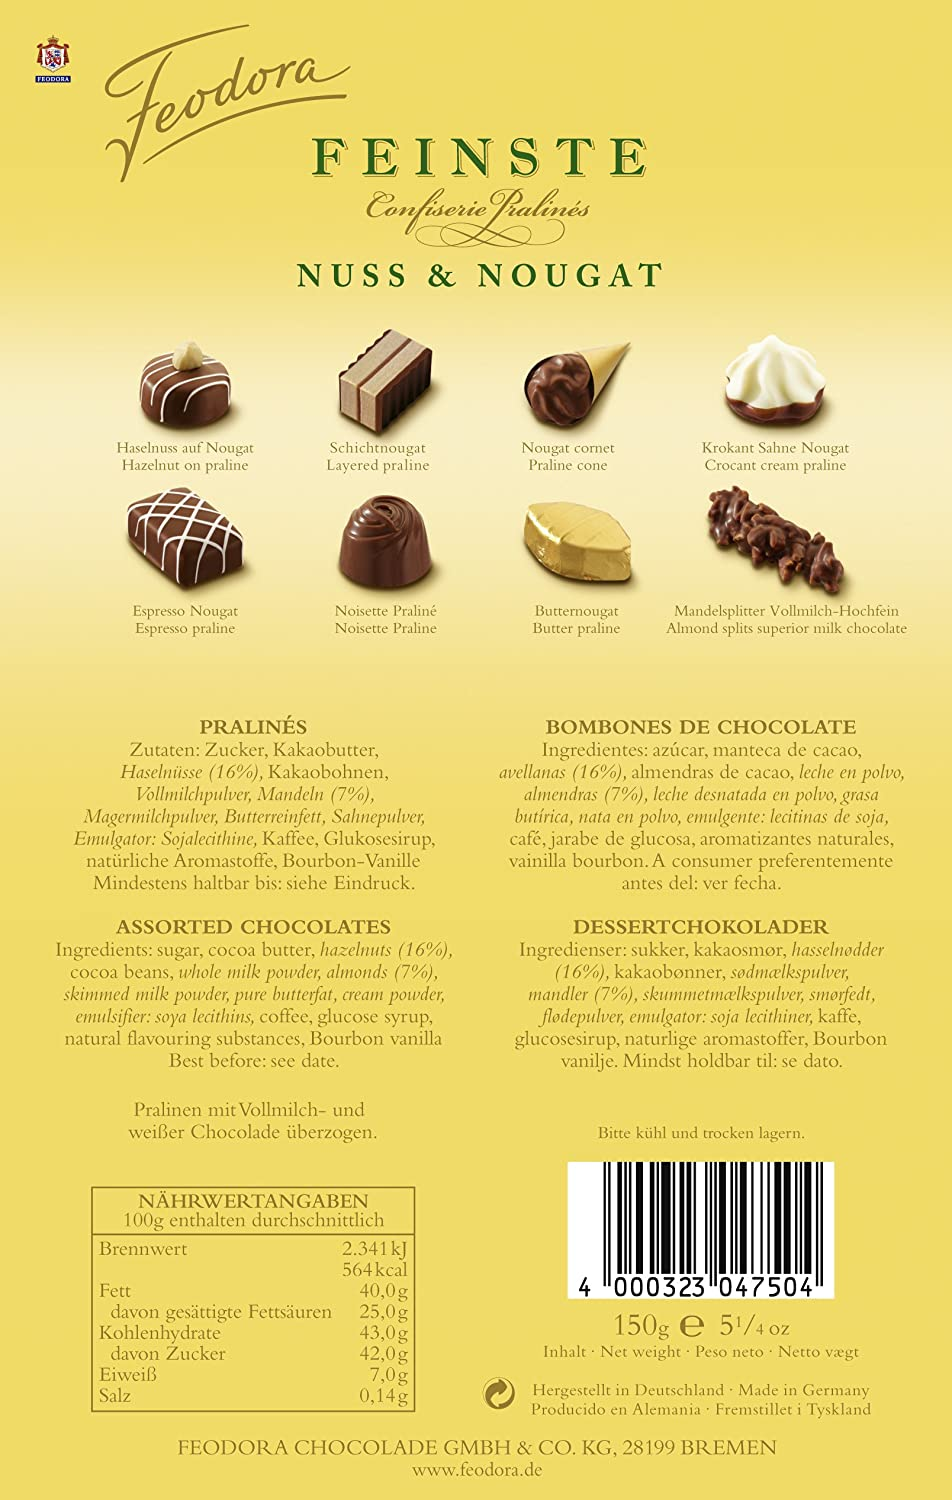 Amazon.com : Feodora Feinste Confiserie-Pralinés Nuss und Nougat, 1er Pack (1 x 150 g) : Chocolate Assortments And Samplers : Grocery & Gourmet Food